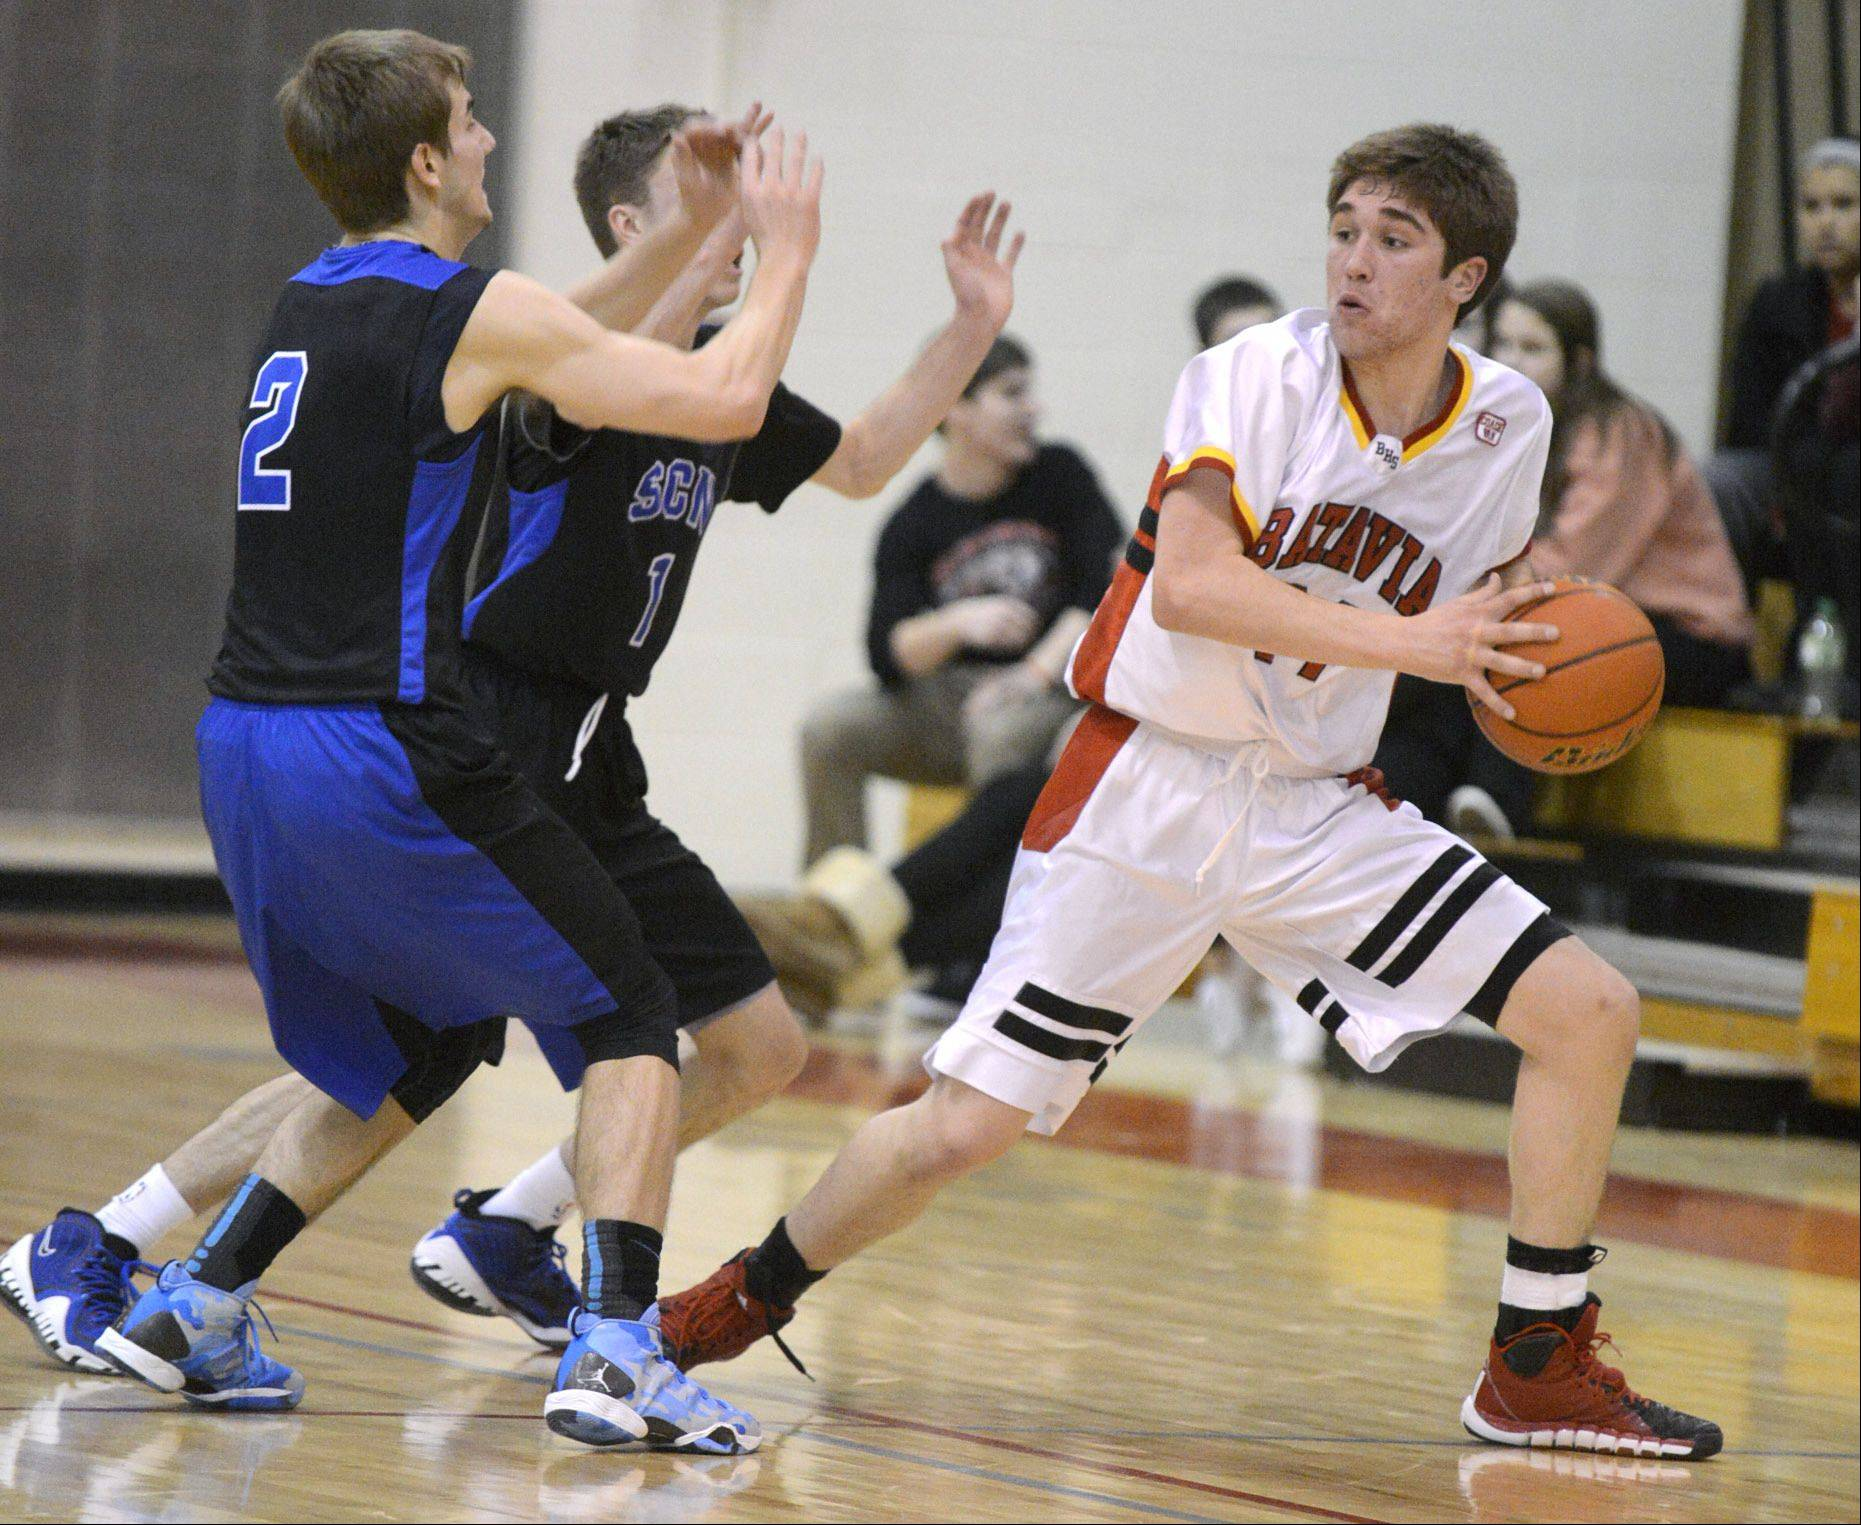 St. Charles North's Jake Ludwig (2) and Alec Goetz (1) swarm Batavia's Tyler Lovestrand in the second quarter on Friday.